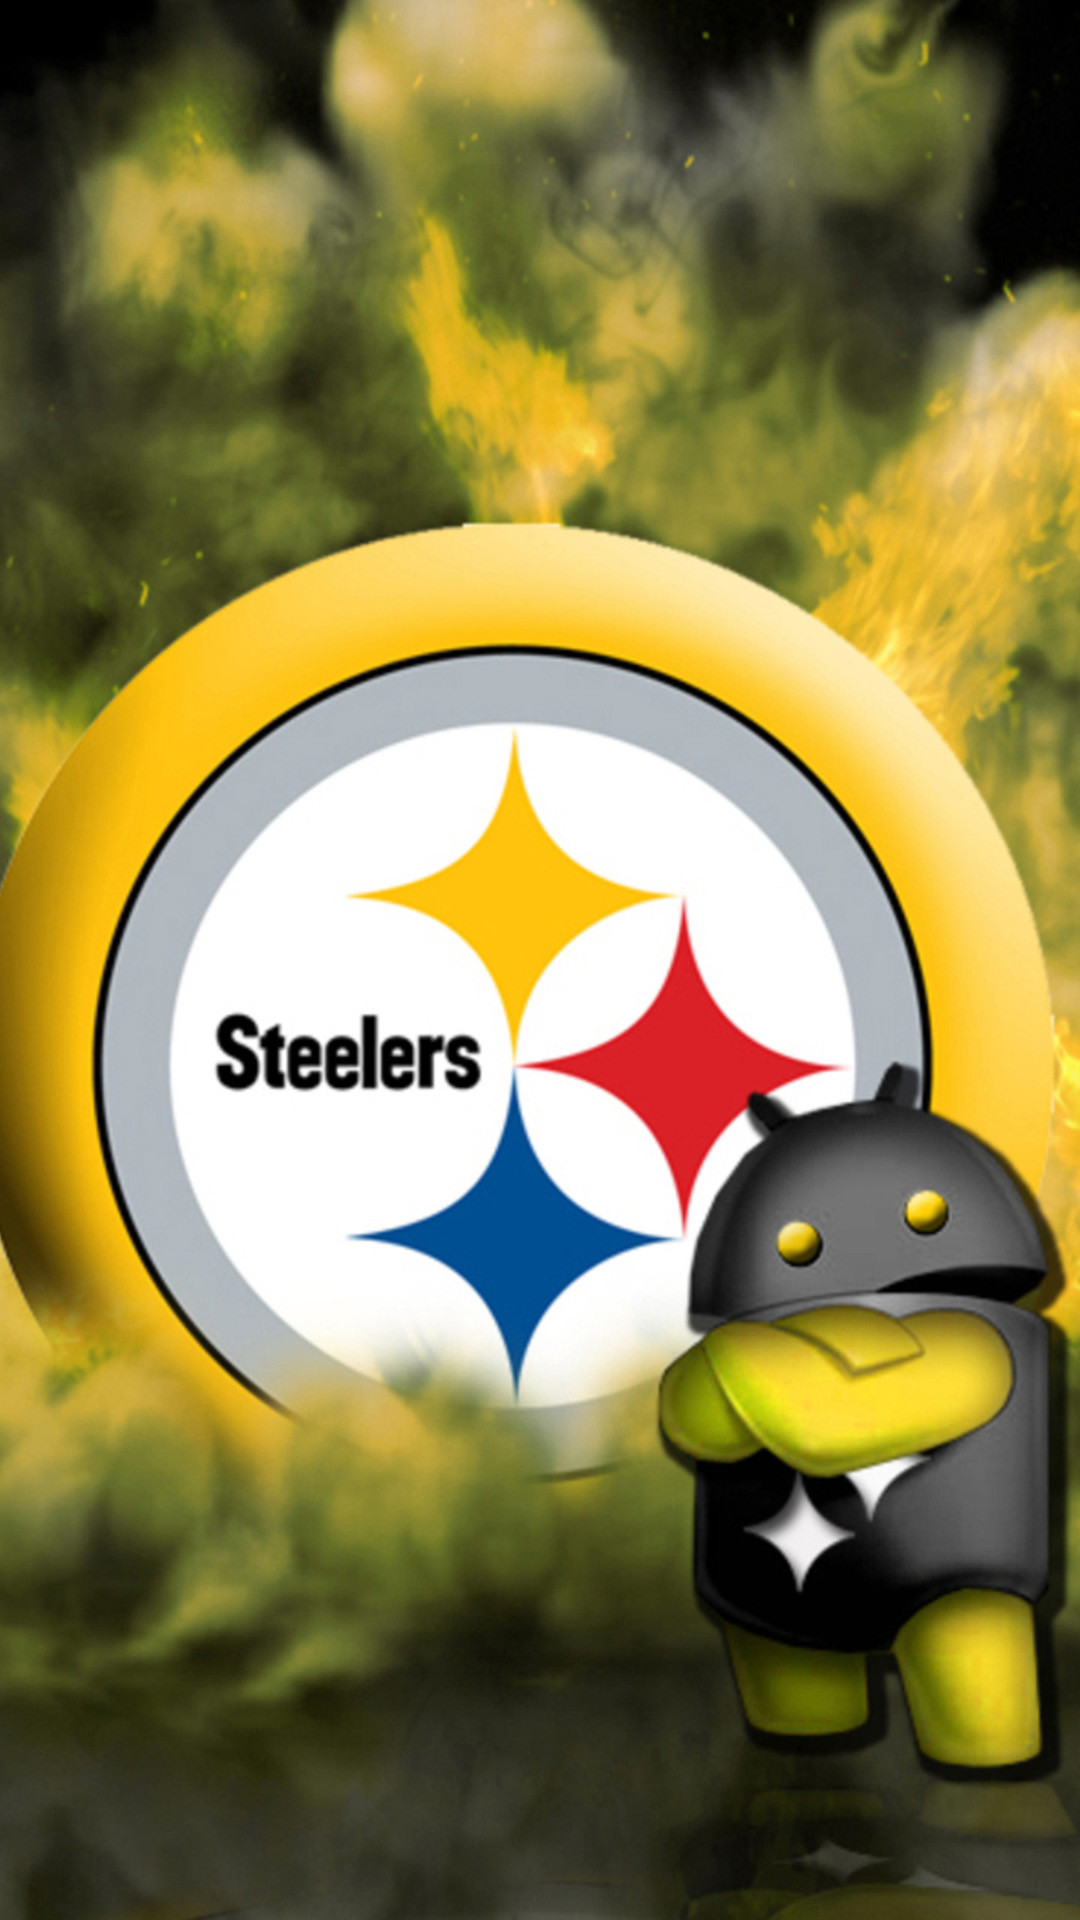 Android Steelers Galaxy S5 Wallpapers HD.jpg